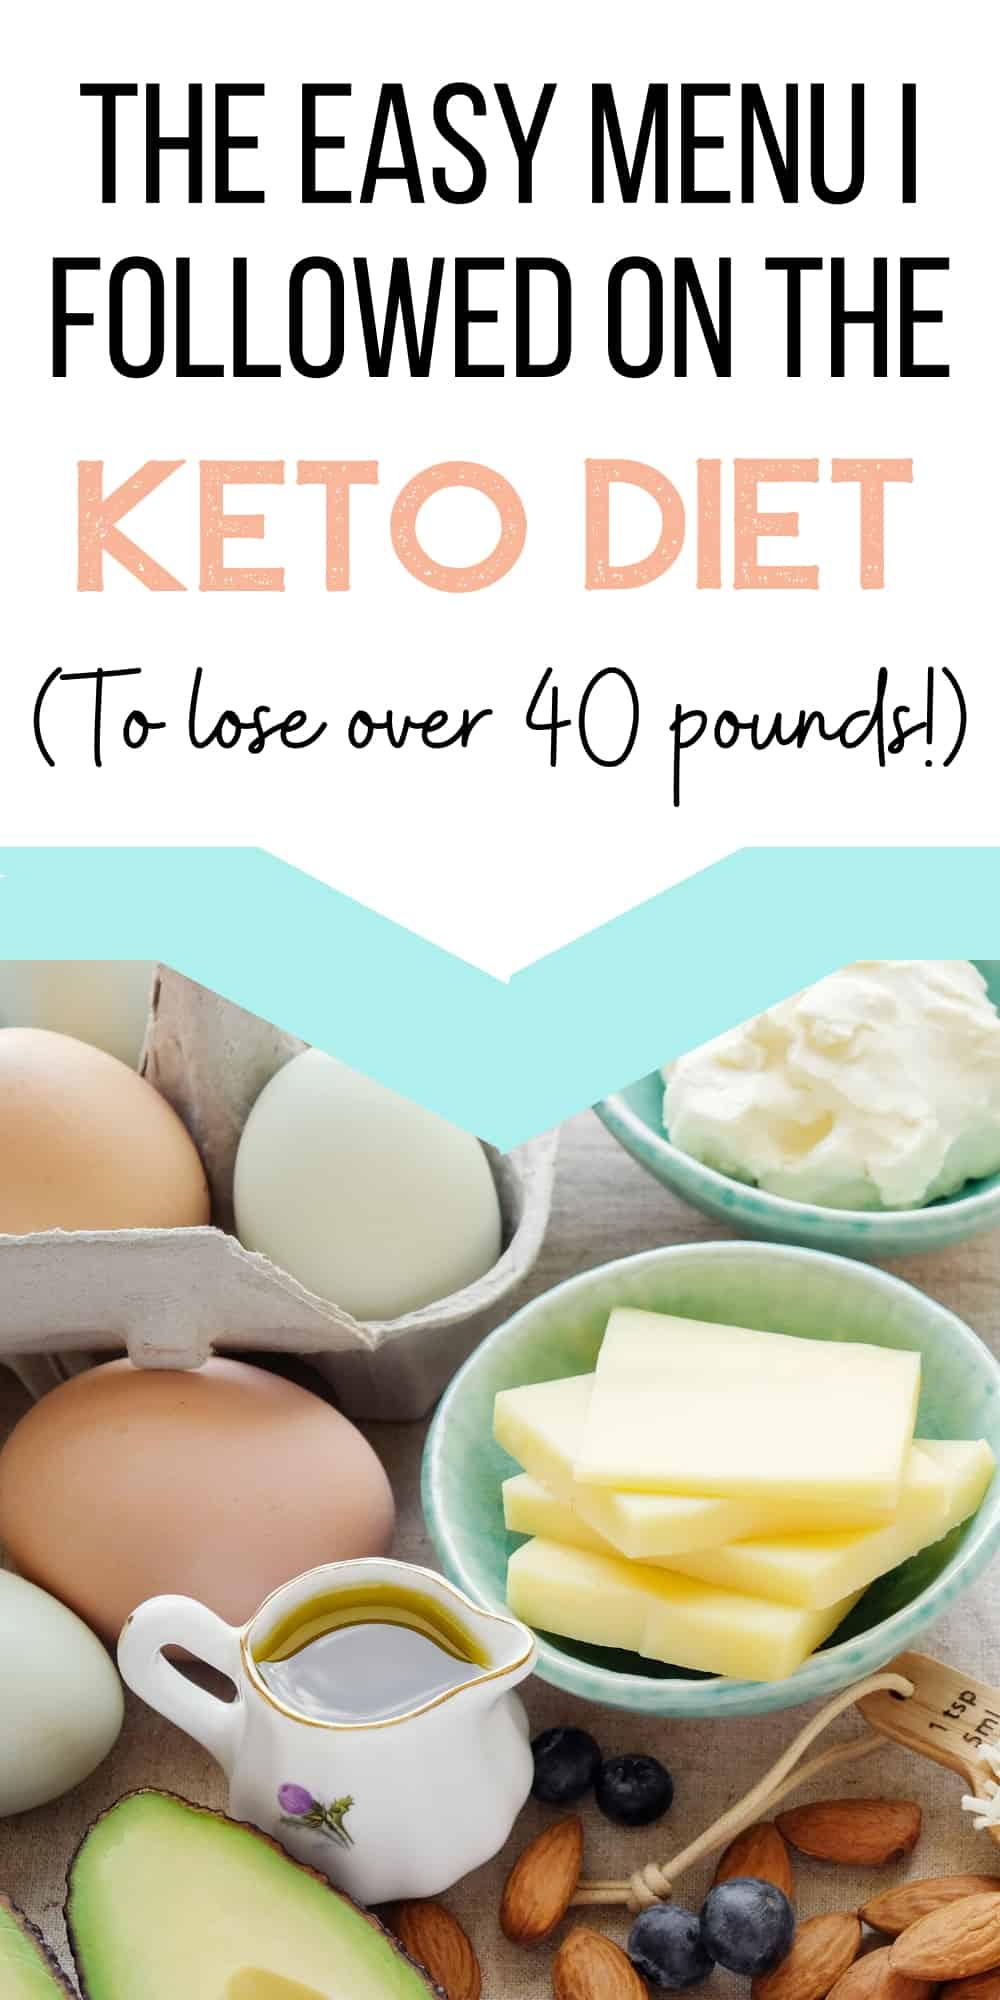 Sample Menu For Keto Diet